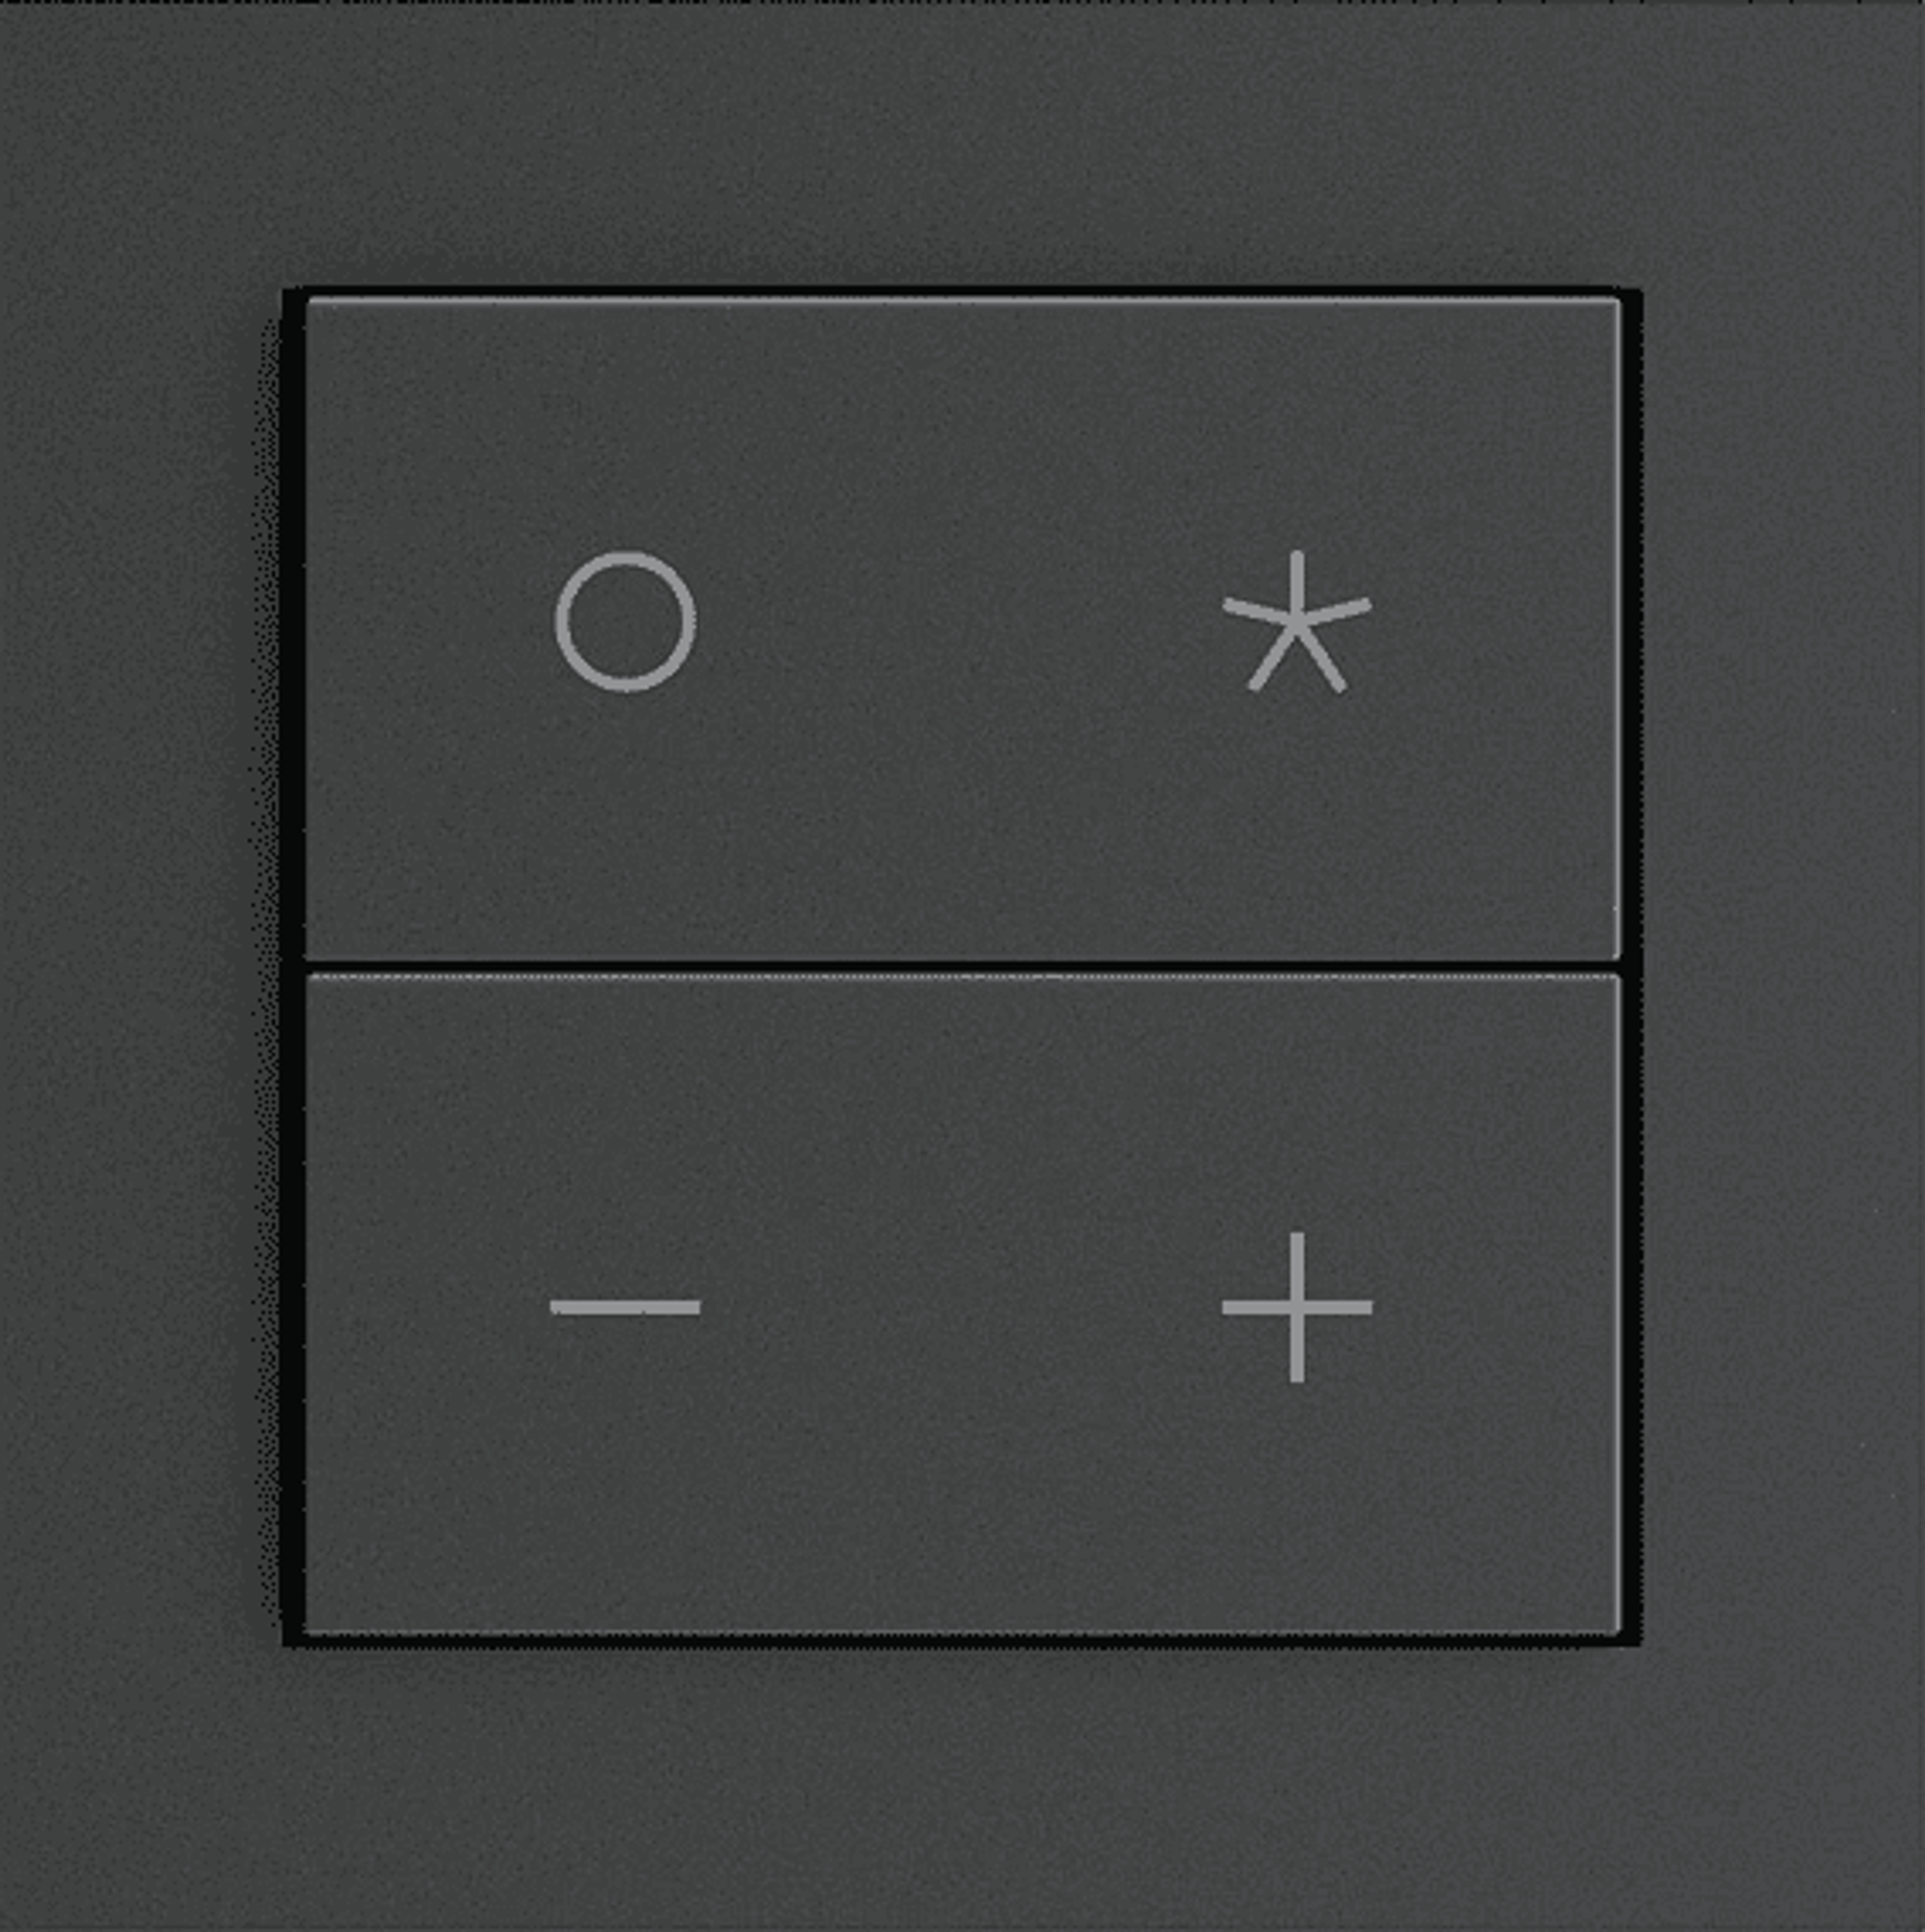 Senic Nuimo Click Add-On Switch black